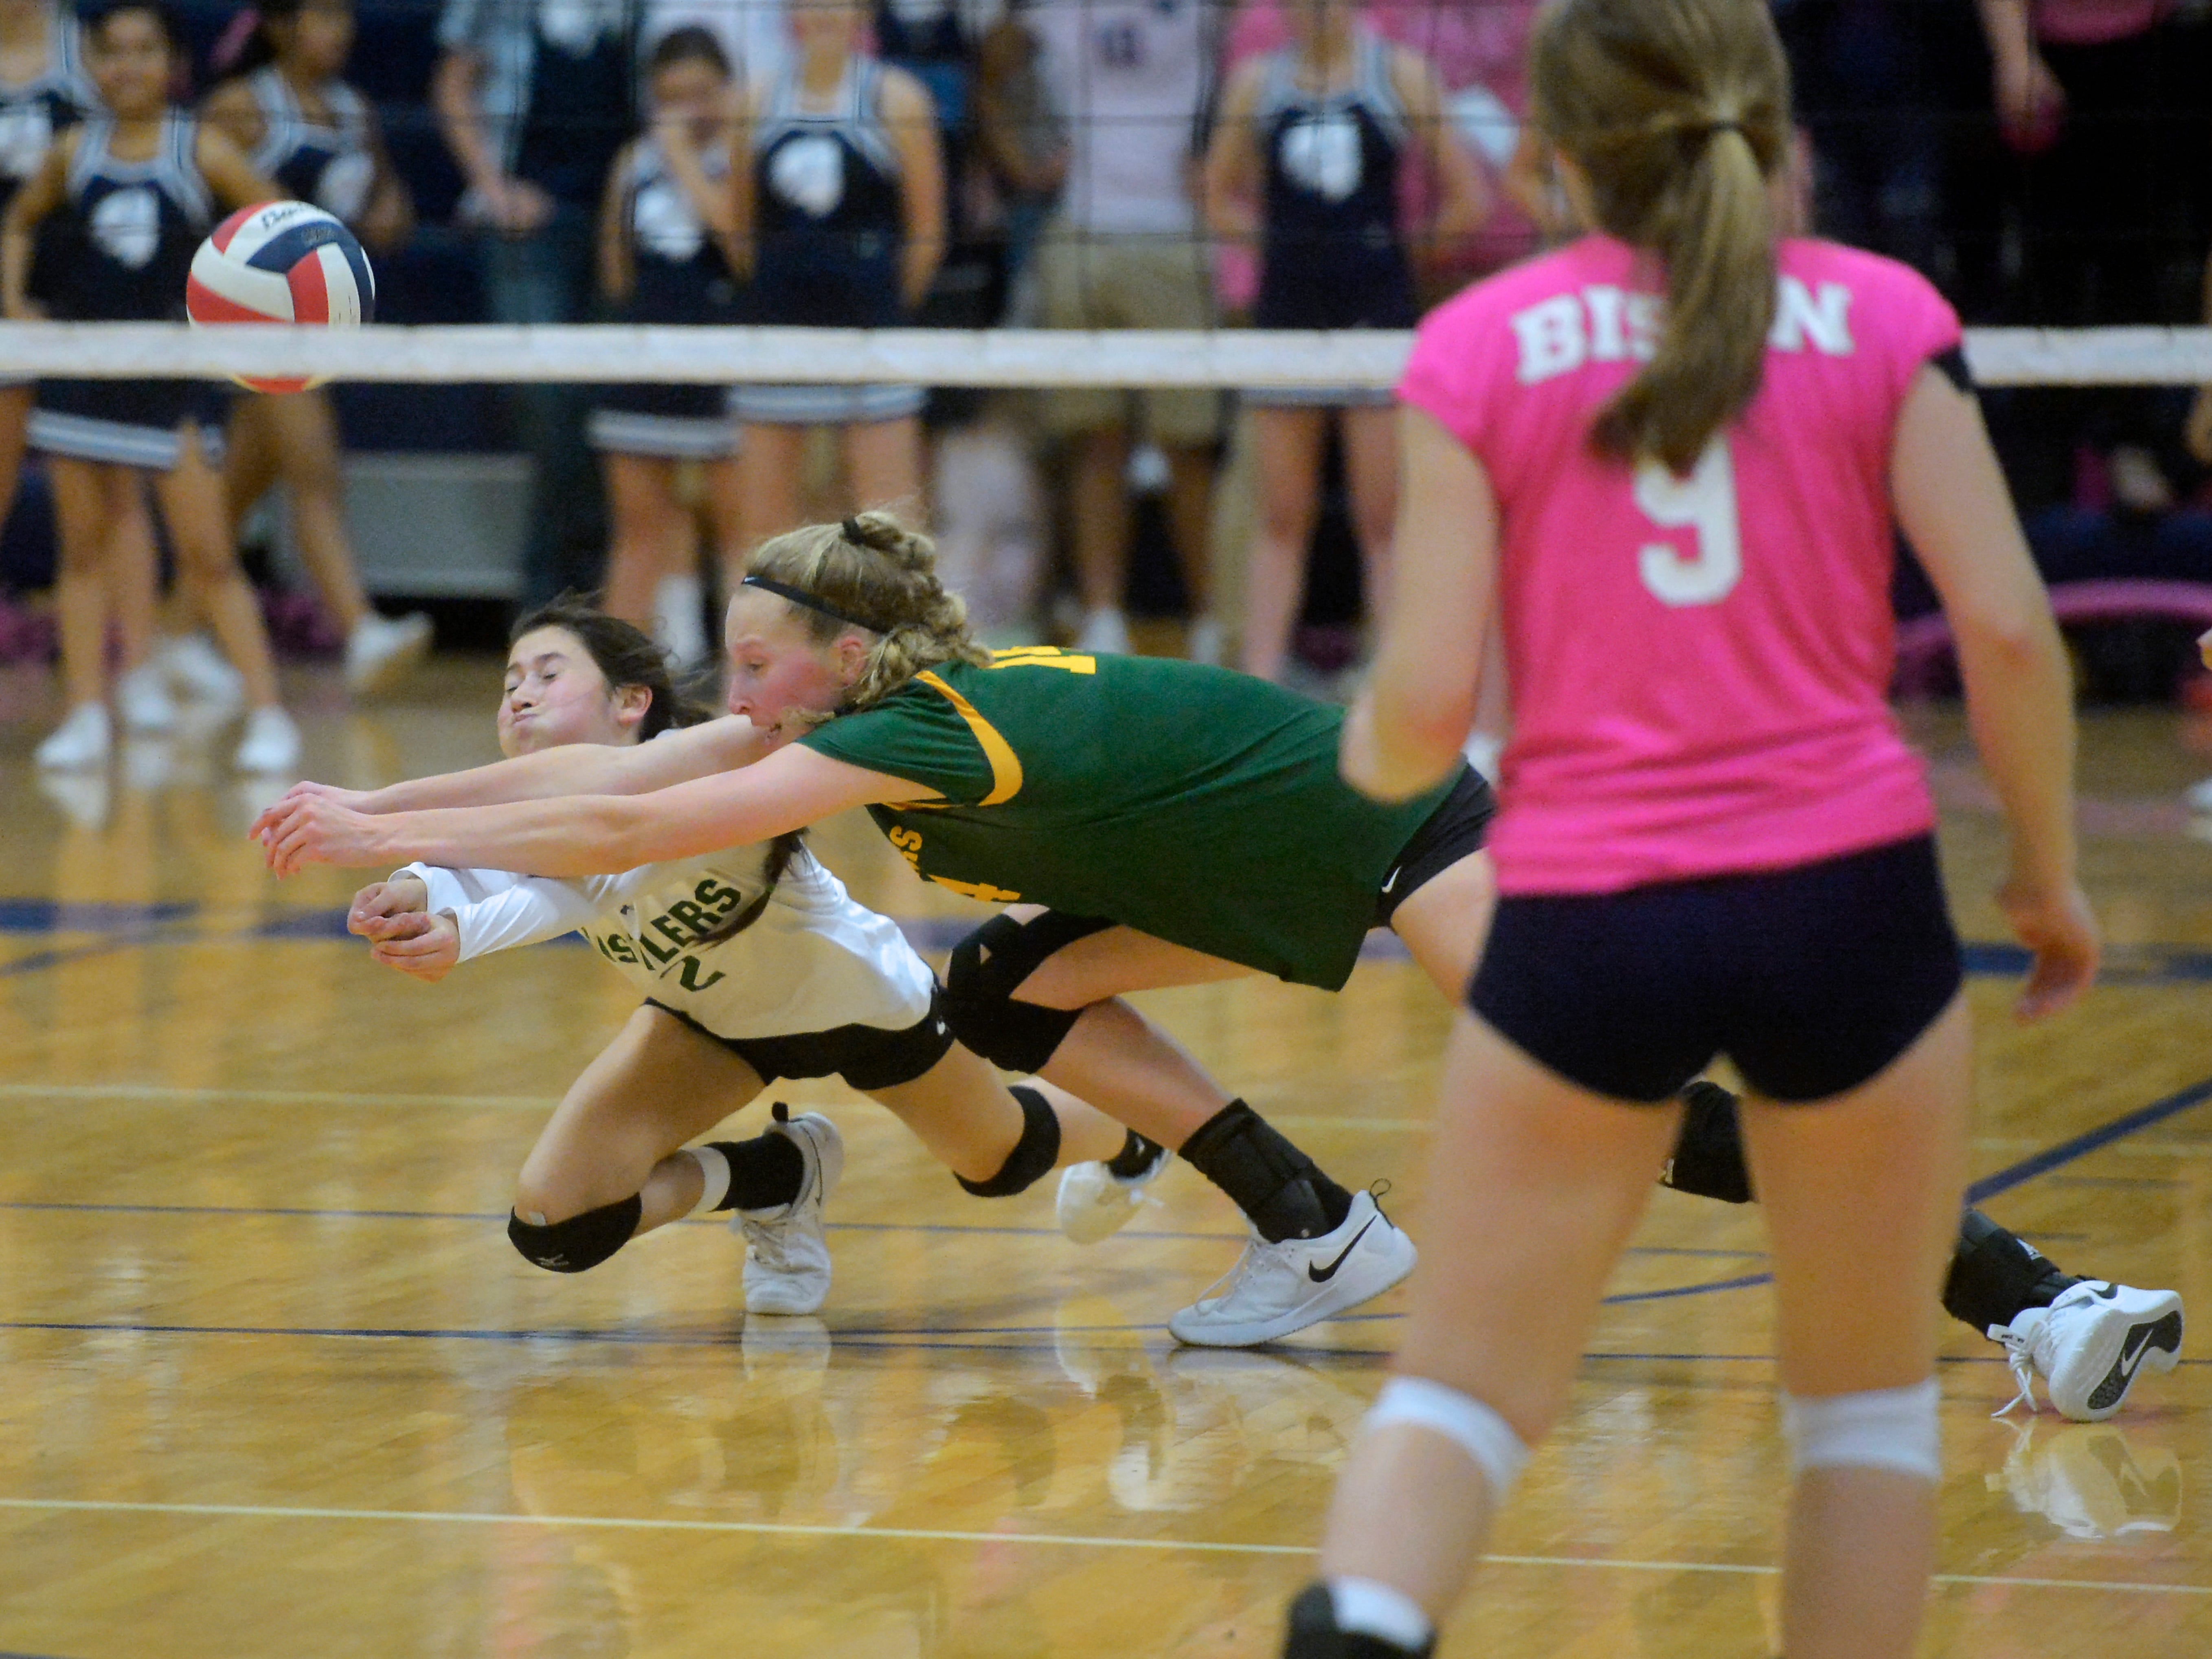 CMR's Lauren Lindseth, 2, and Allie Olsen dive for the ball during crosstown volleyball match in the Swarthout Fieldhouse, Tuesday.